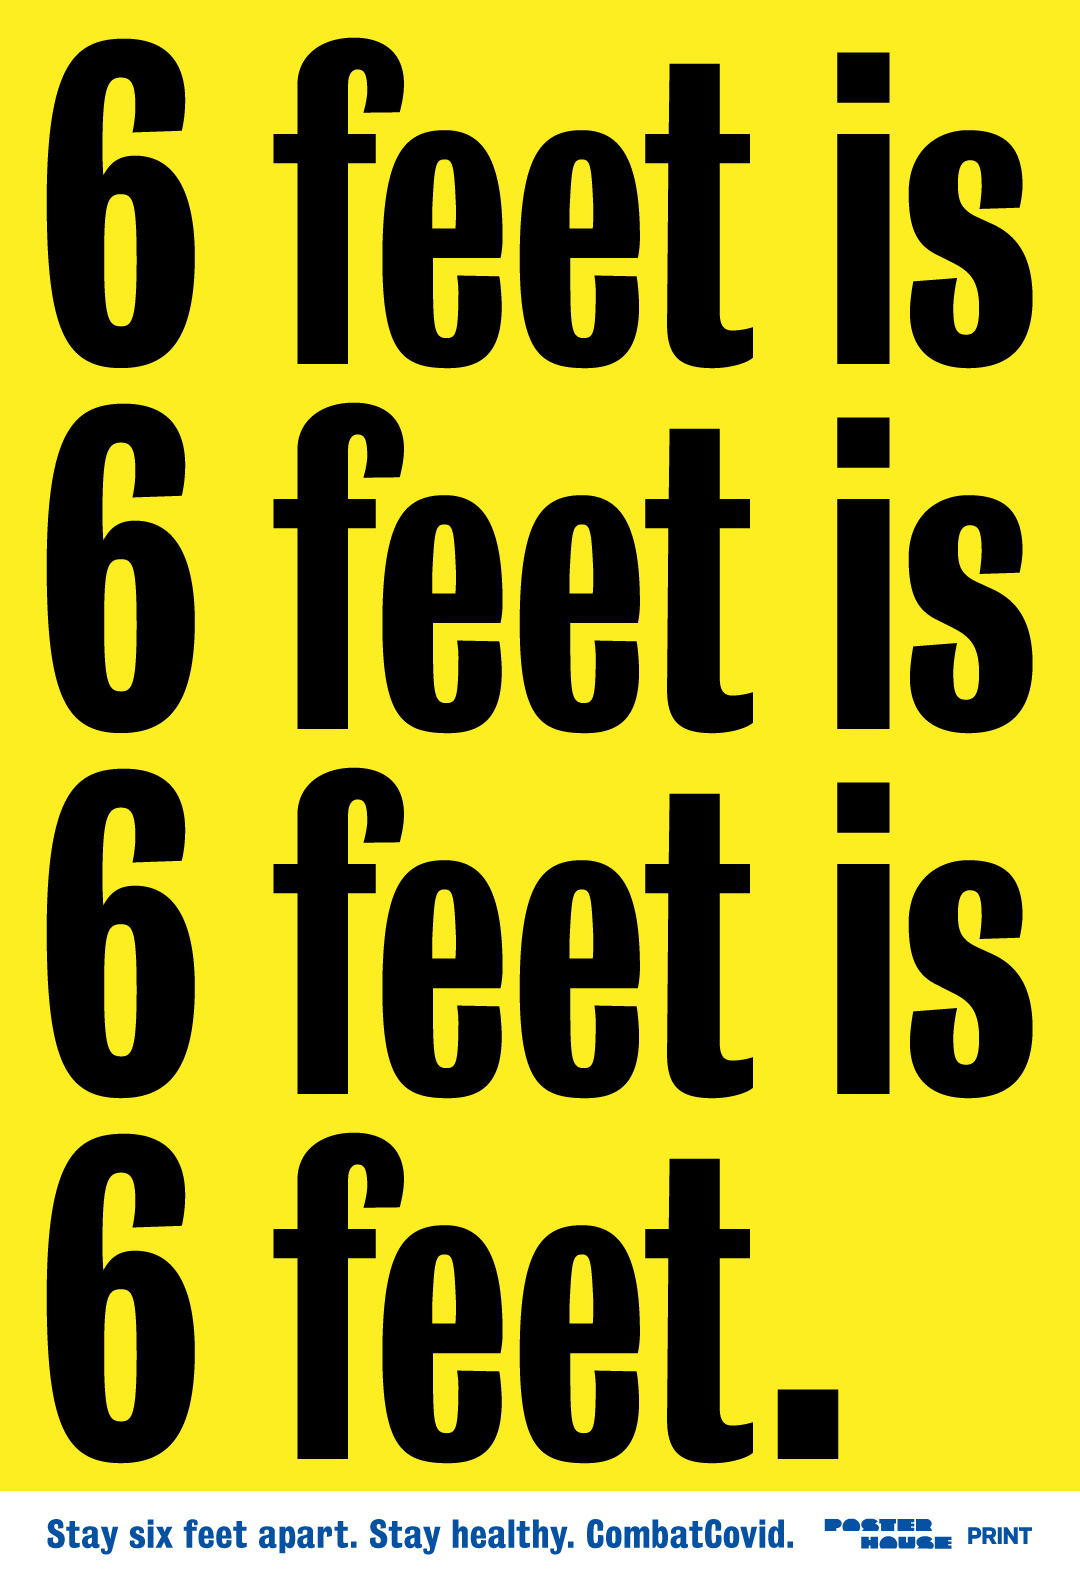 type-based poster with the phrase 6 feet in black text repeated on a yellow background